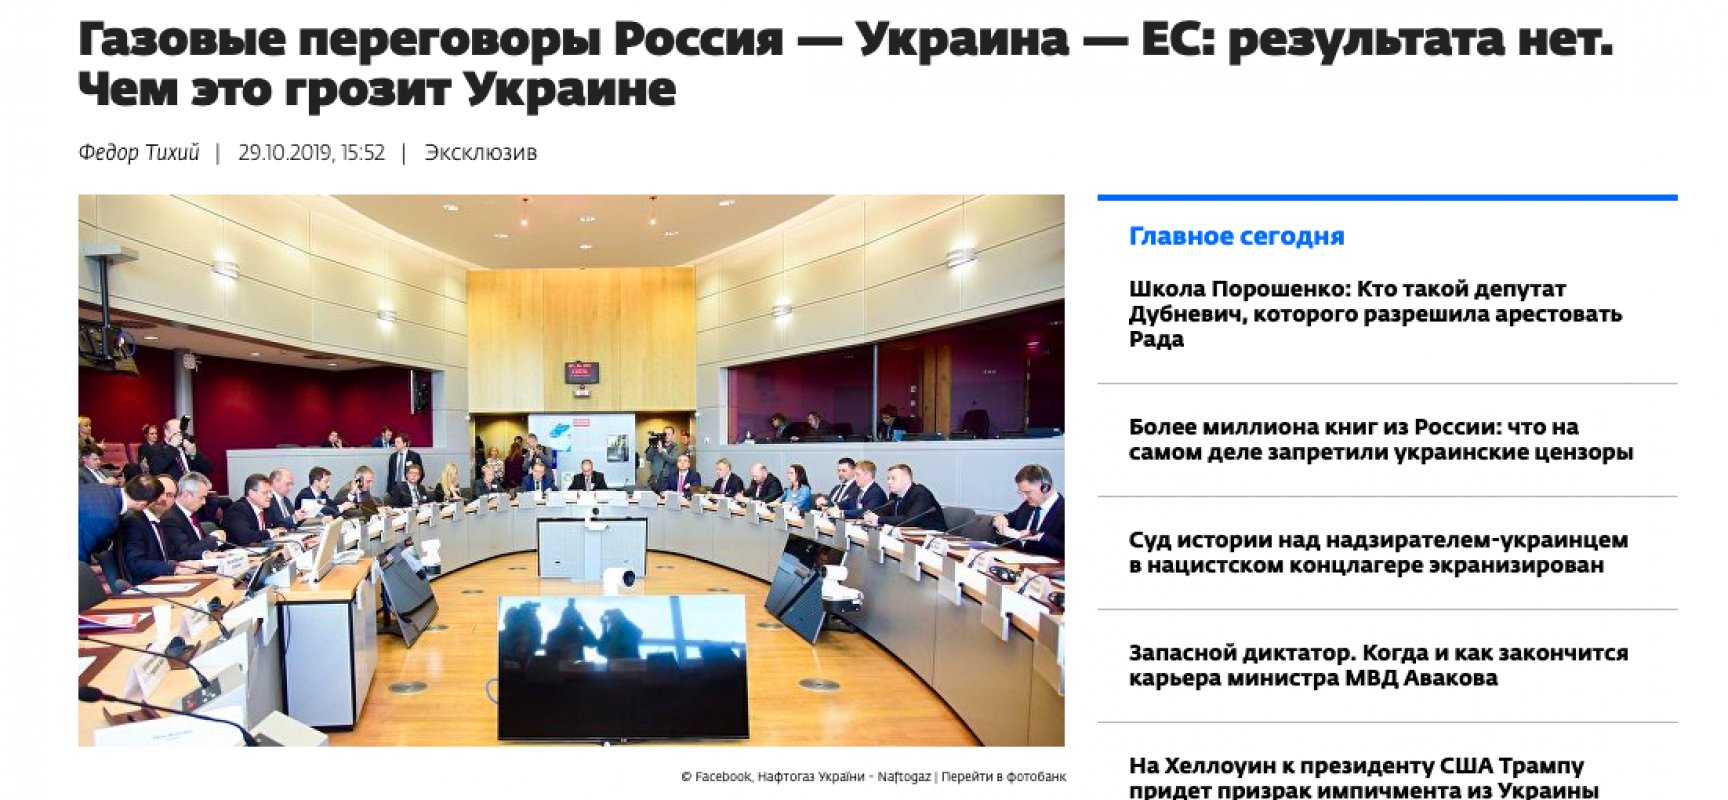 Fake: Ukraine's National Gas Company Naftogaz is Wrecking Negotiations with Gazprom and Blackmailing Russia